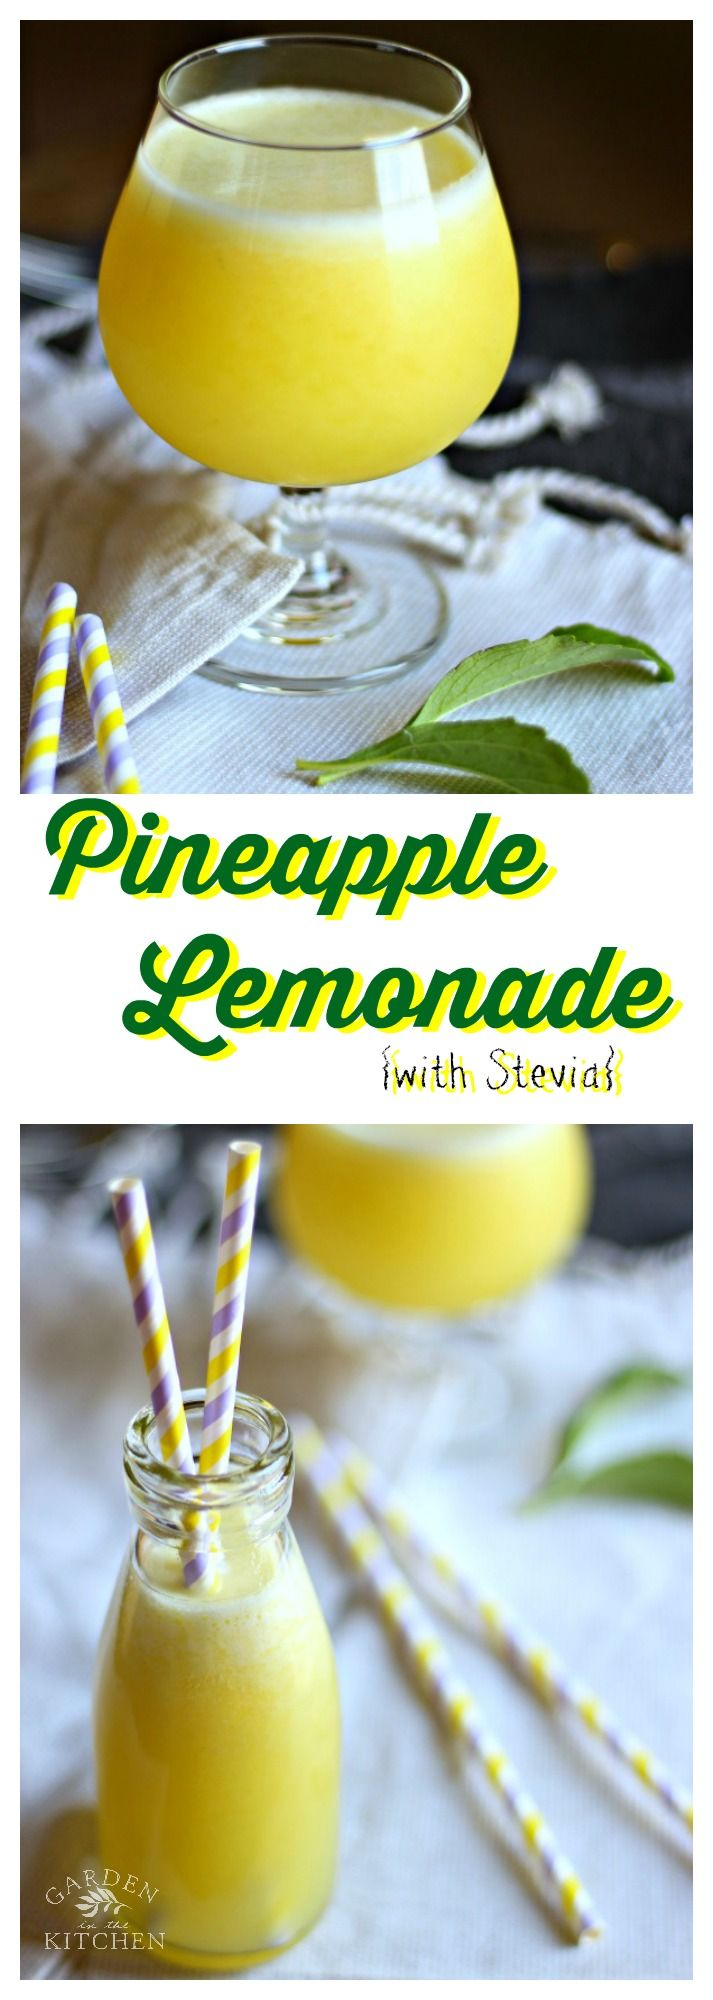 Pineapple Lemonade sweetened with fresh stevia is a deliciously refreshing drink to sip and stay hydrated! gardeninthekitchen.com